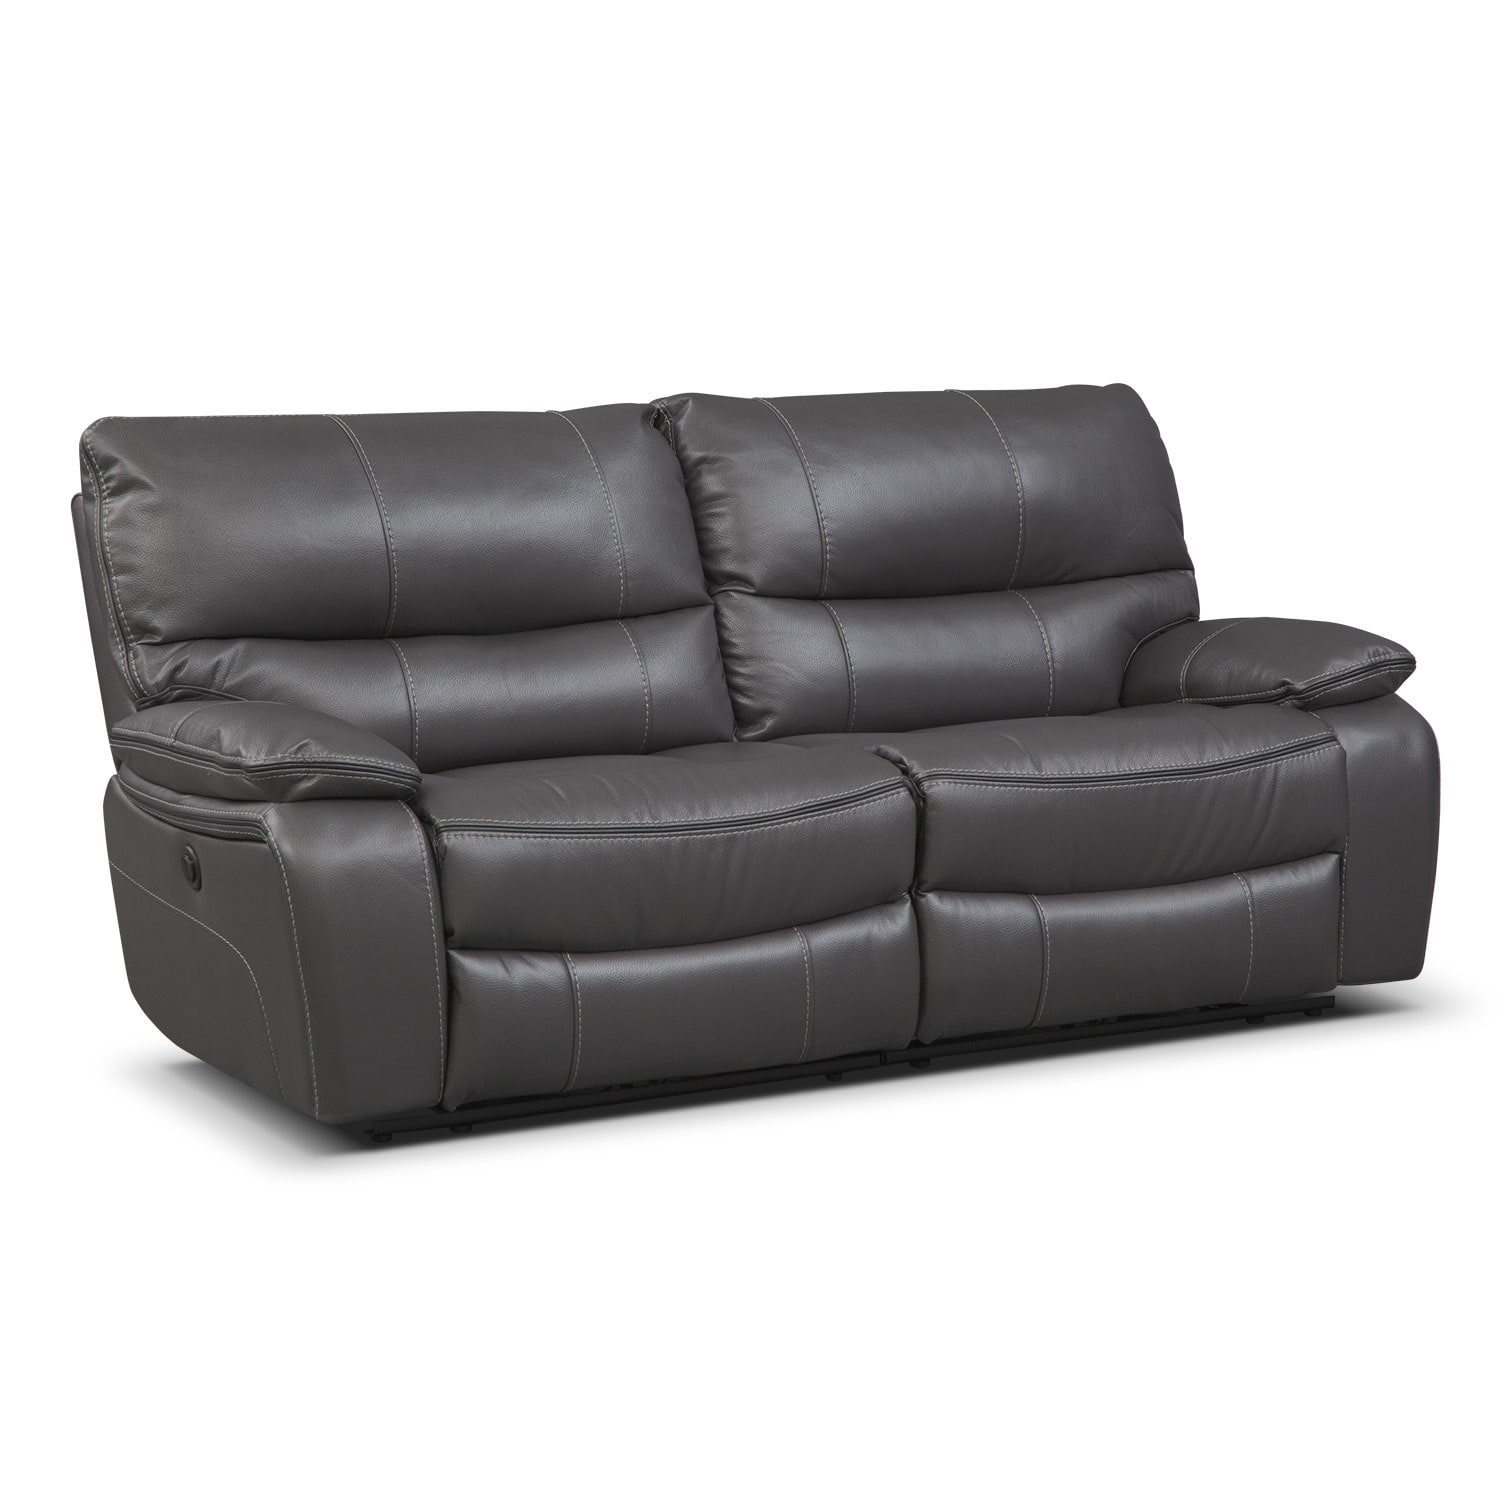 Orlando Power Reclining Sofa Gray American Signature Furniture